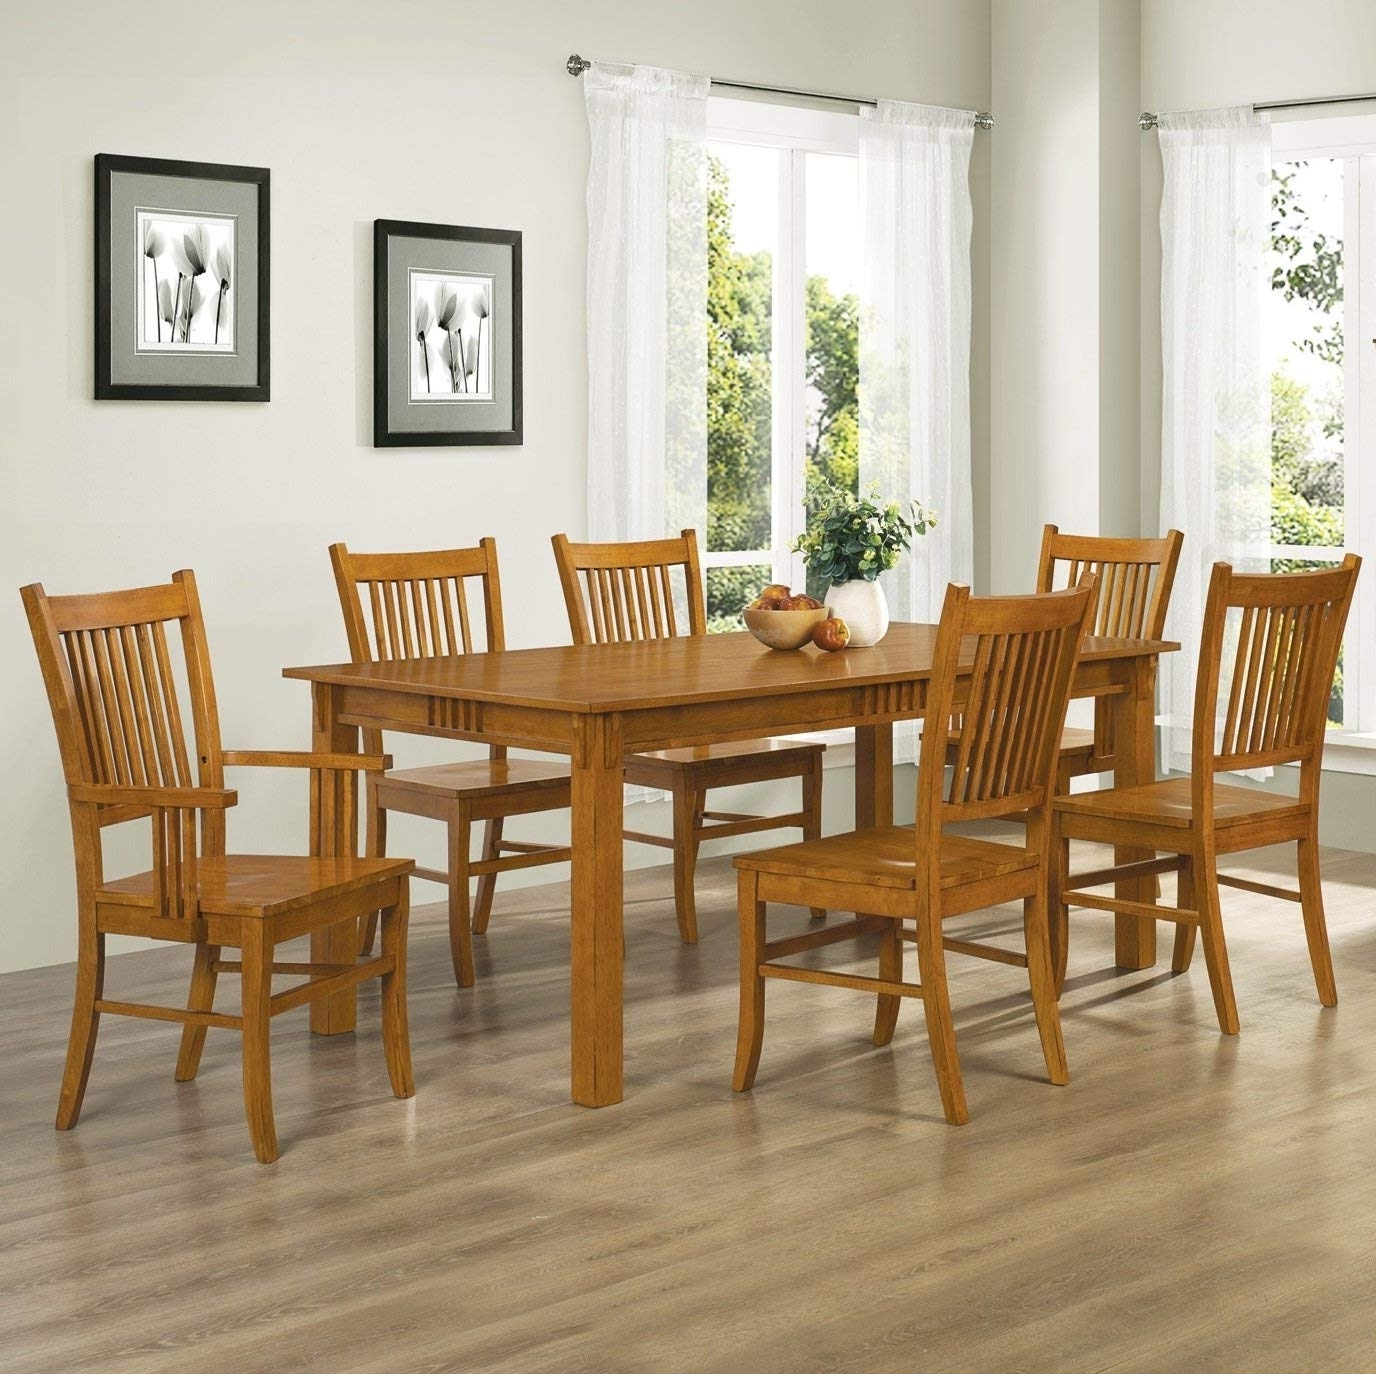 Amazon – Coaster Home Furnishings 7 Piece Mission Style Solid Within Most Recent Craftsman 5 Piece Round Dining Sets With Uph Side Chairs (View 5 of 25)